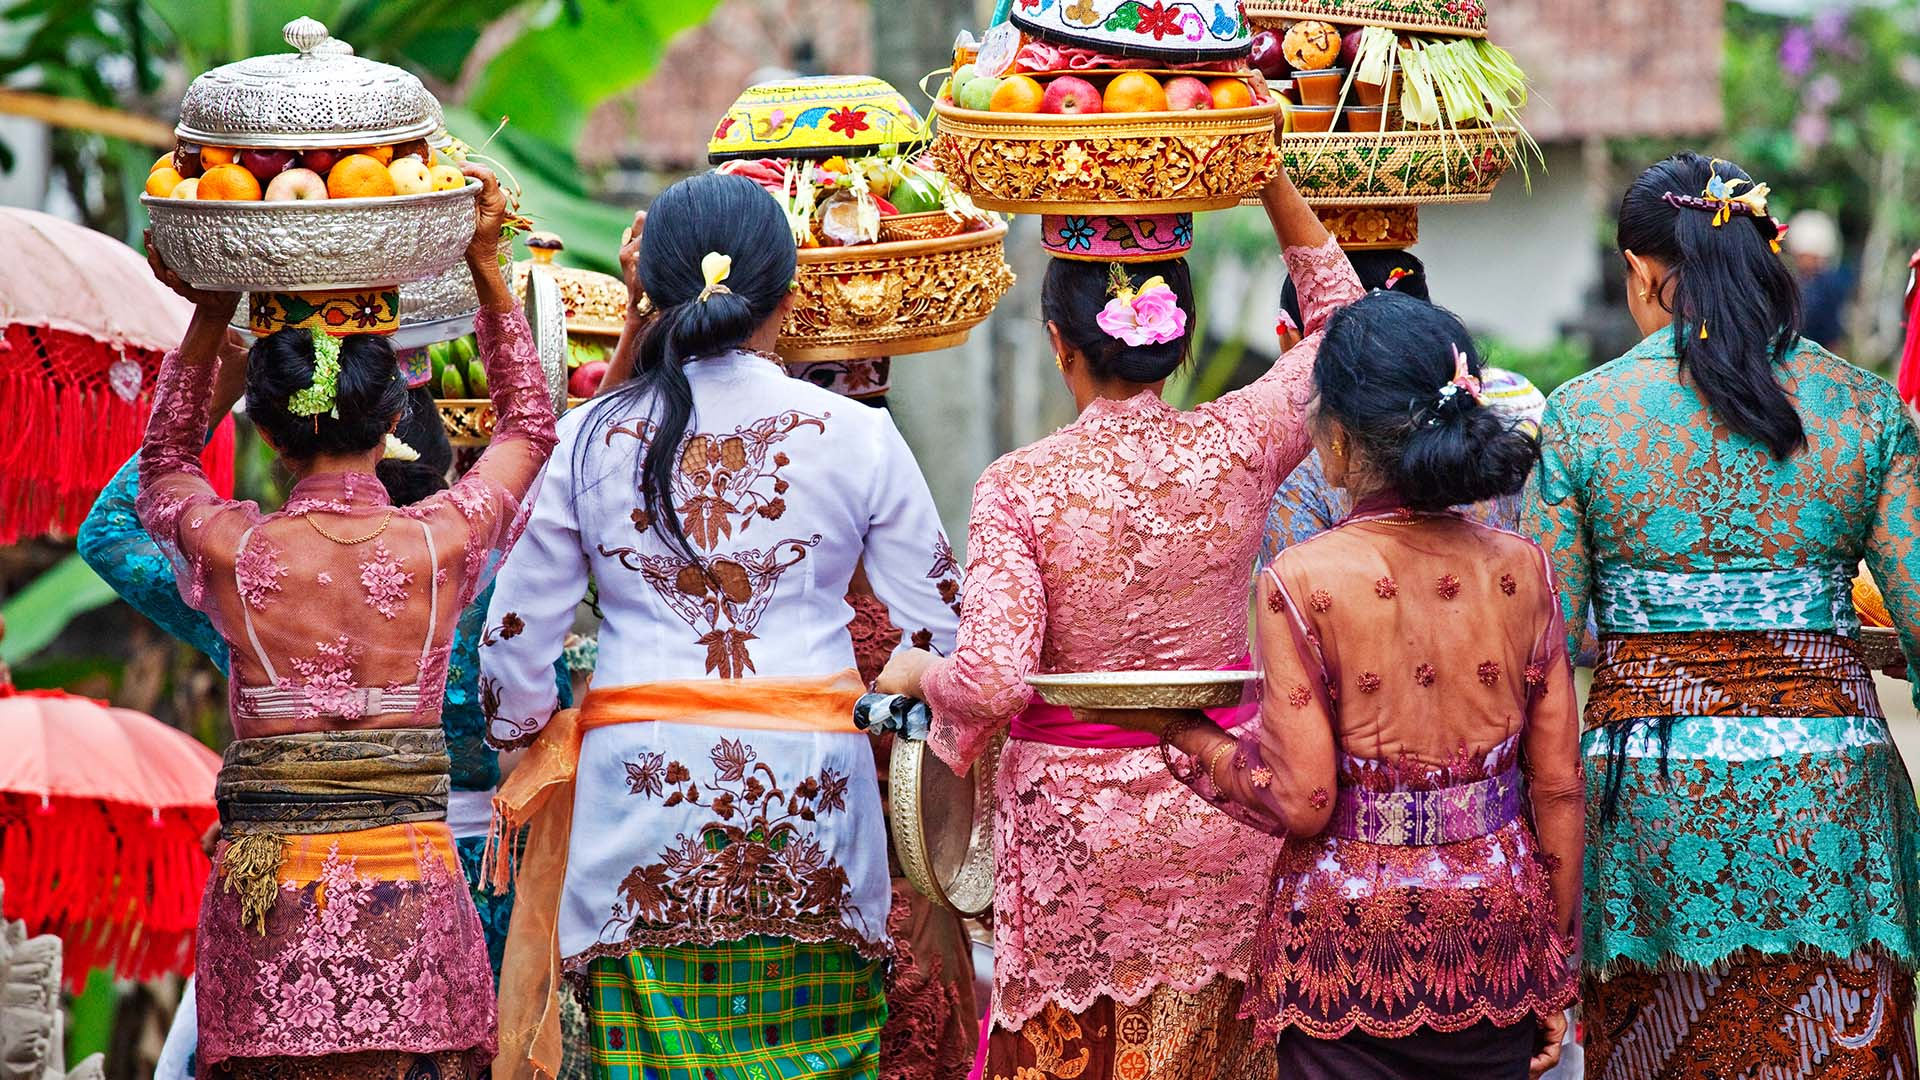 Photo of women in Indonesia